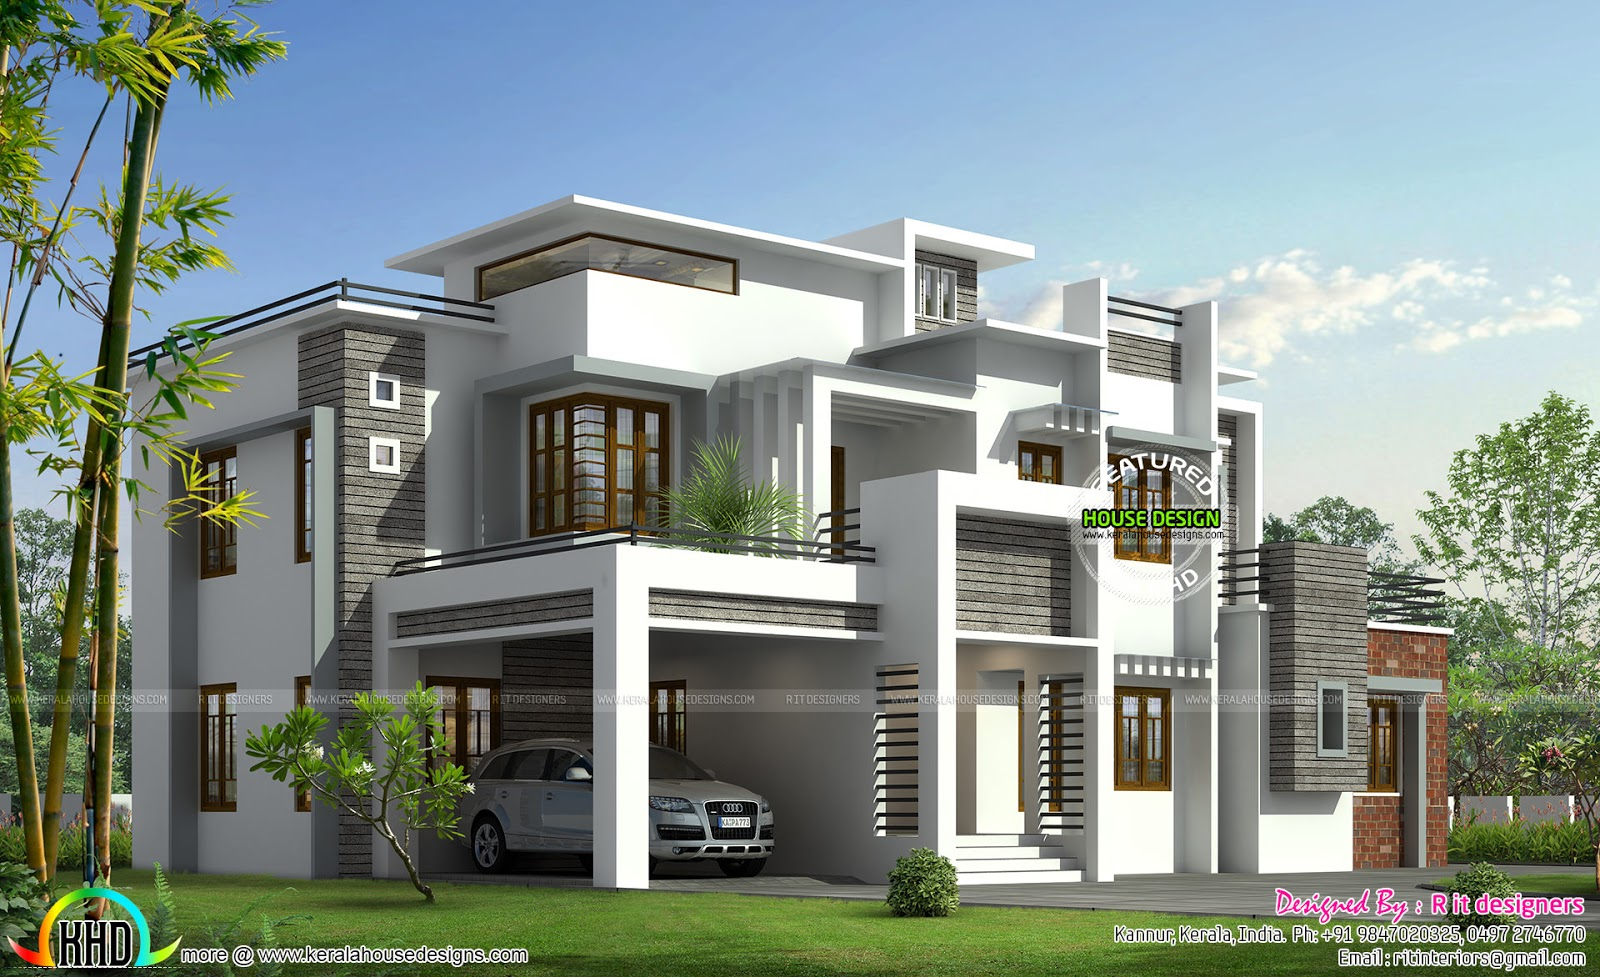 Box model contemporary house kerala home design and for House models and plans